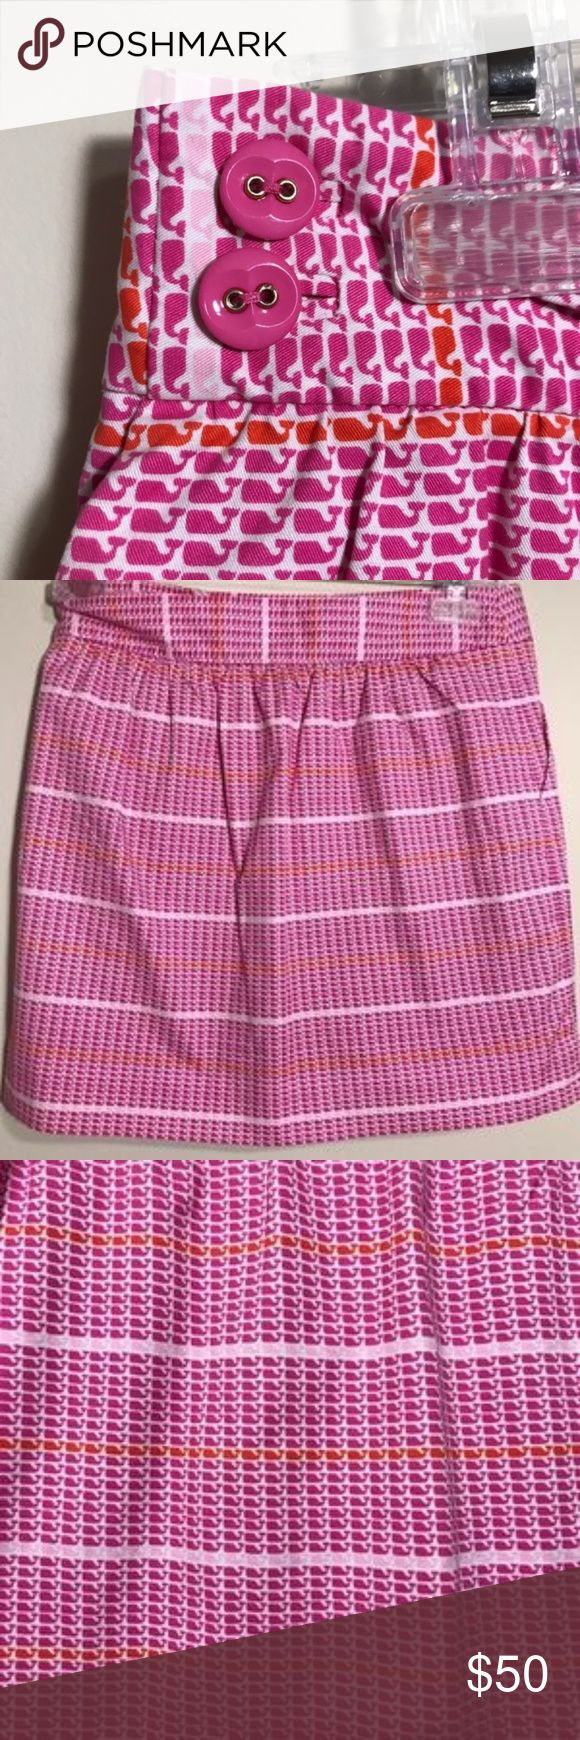 =VINEYARD VINES= MINI WHALE SKIRT 0 NWT PINK/ORANGE/WHITE COTTON SKIRT SIZE 0 WOMEN GIRLS 16 2 BUTTON ON EACH HIP TO FASTEN MINI NO IMPERFECTIONS PREPPY,POLO,BRUNCH,COUNTRY CLUB,WHALE,RESORT,SPRING,SUMMER 111-A Vineyard Vines Skirts Mini